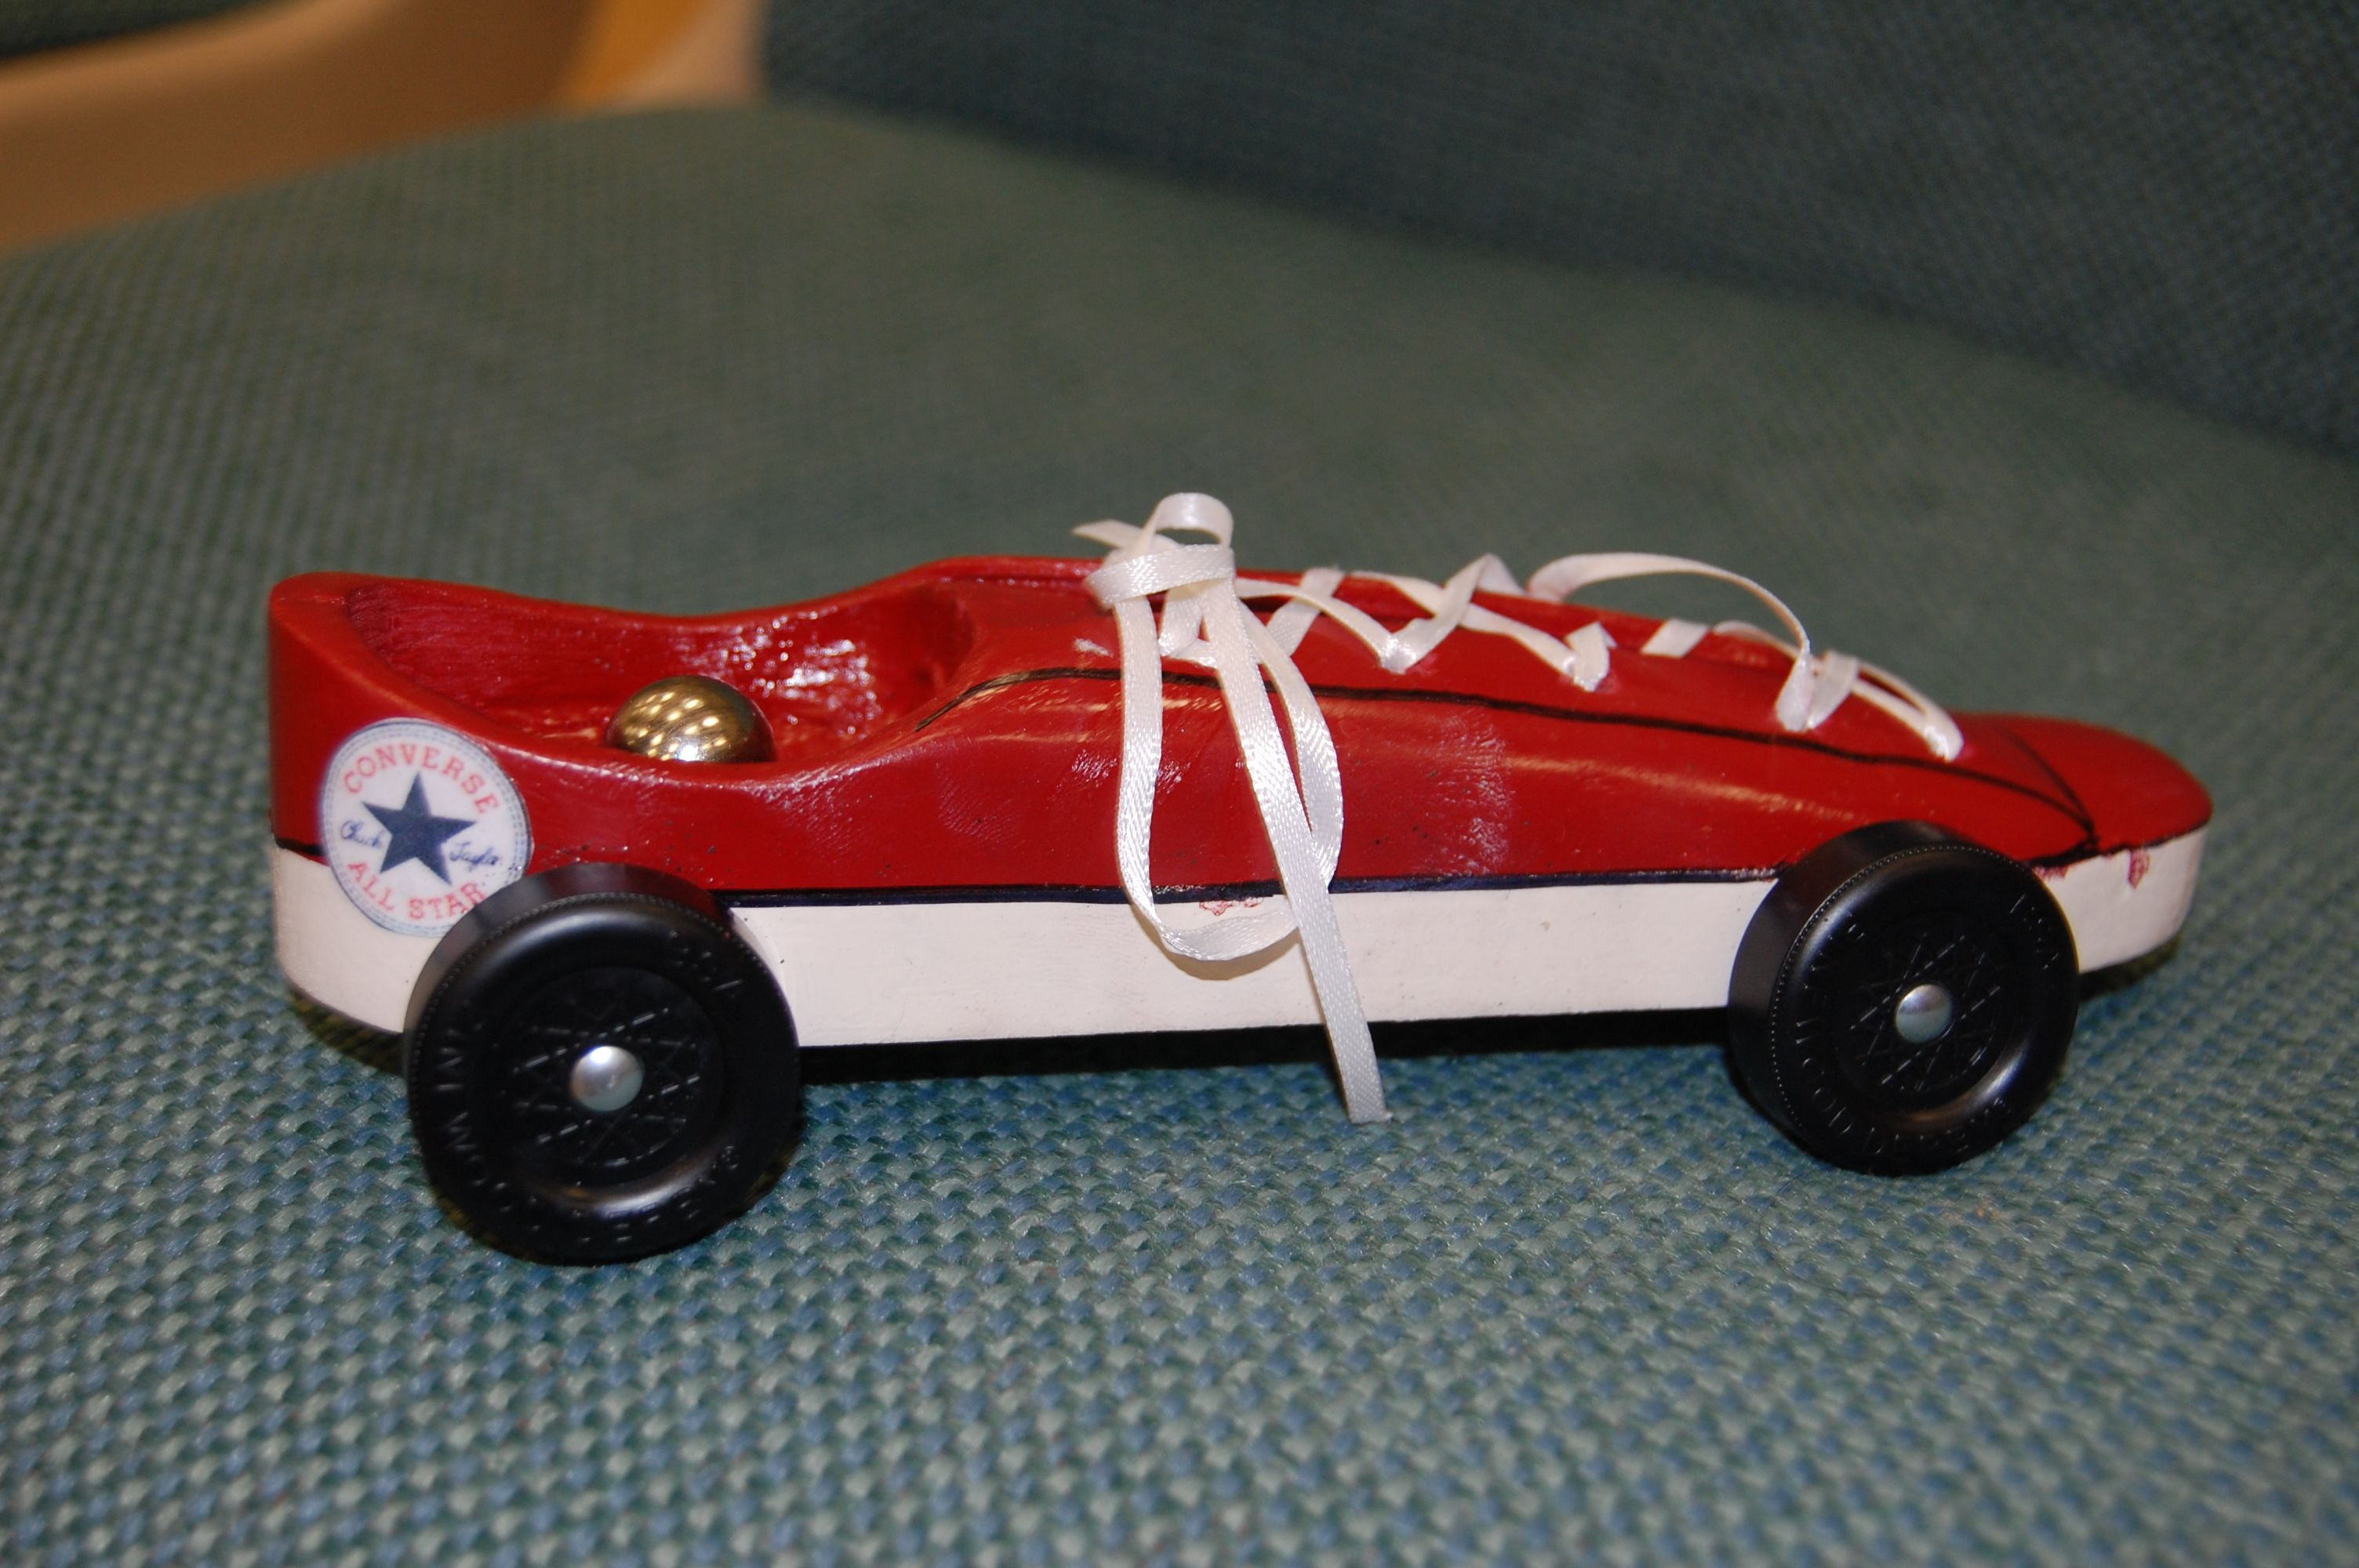 converse pinewood derby style crafty ideas pinterest pinewood